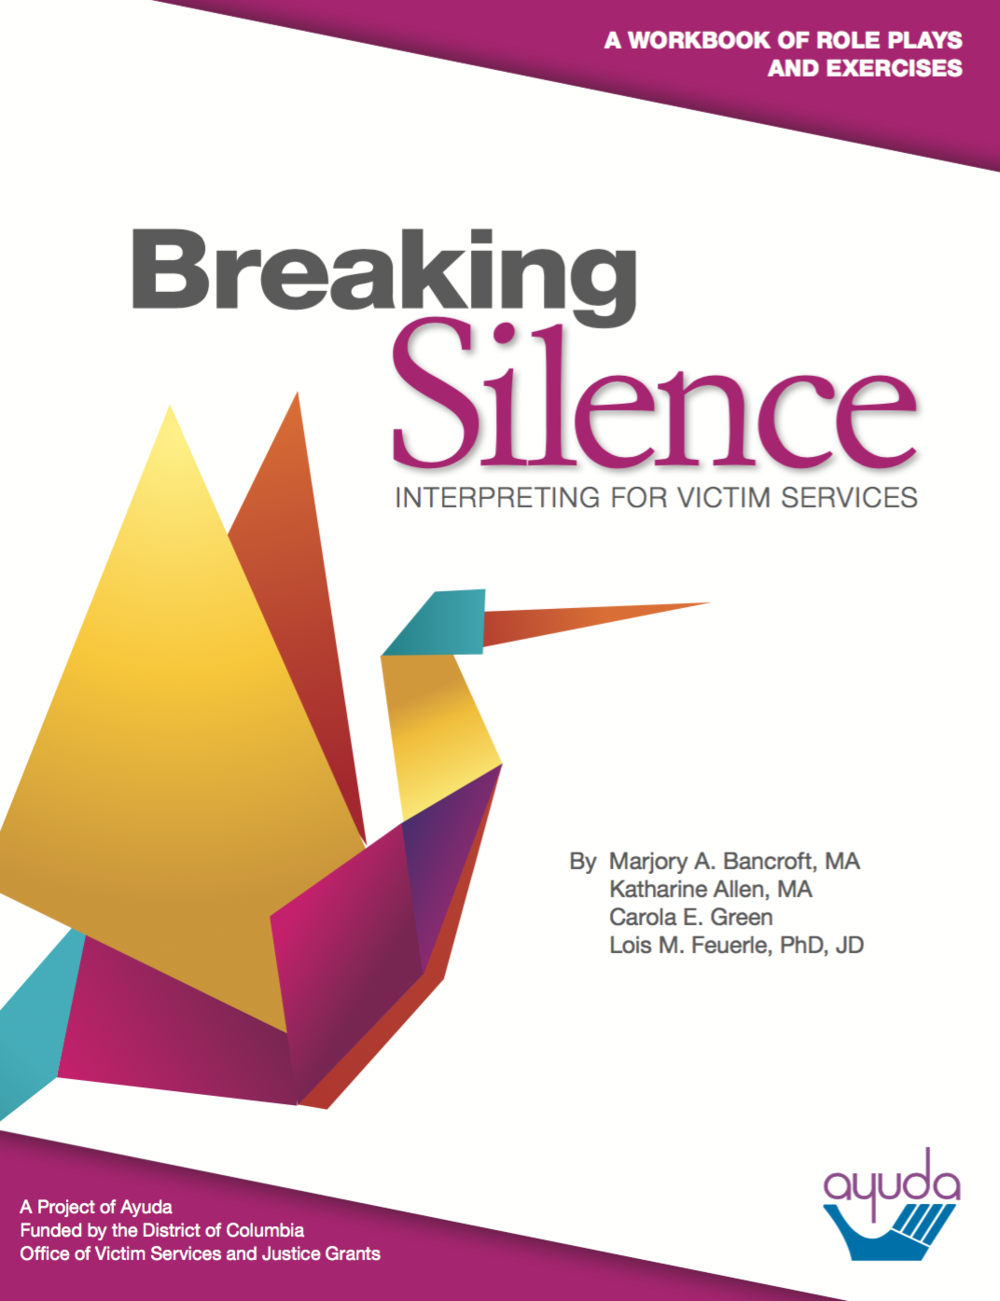 Breaking Silence Workbook thumbnail.png